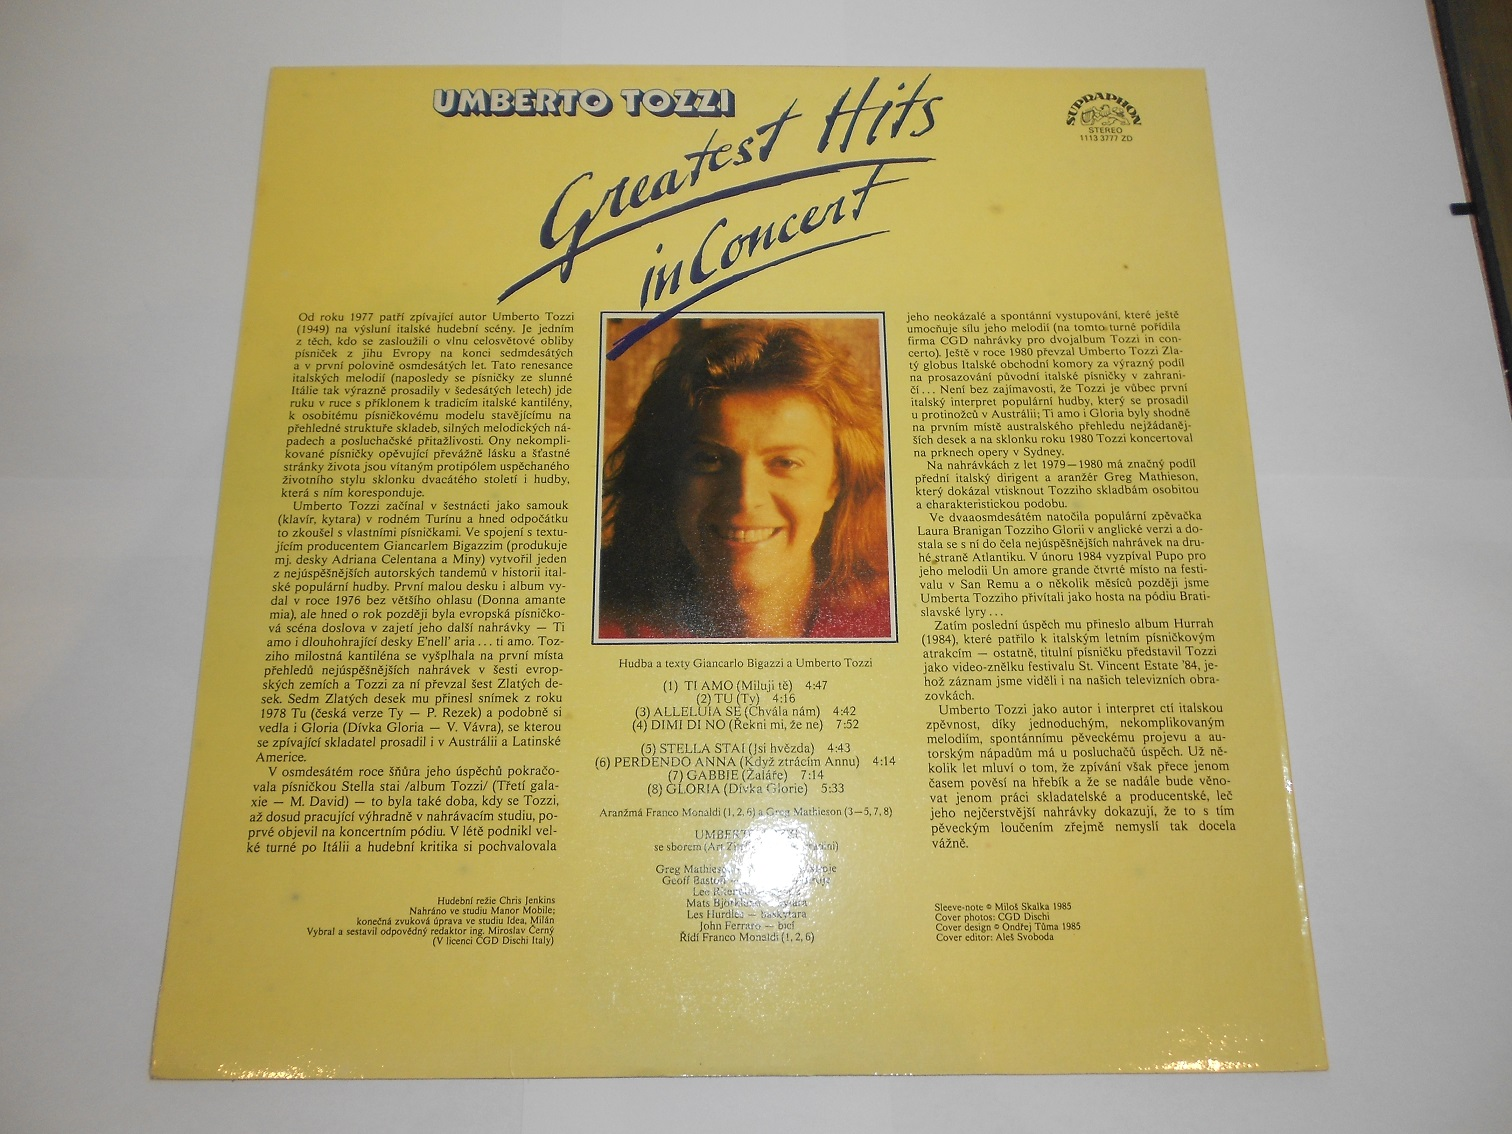 Umberto Tozzi - Greatest Hits In Concert